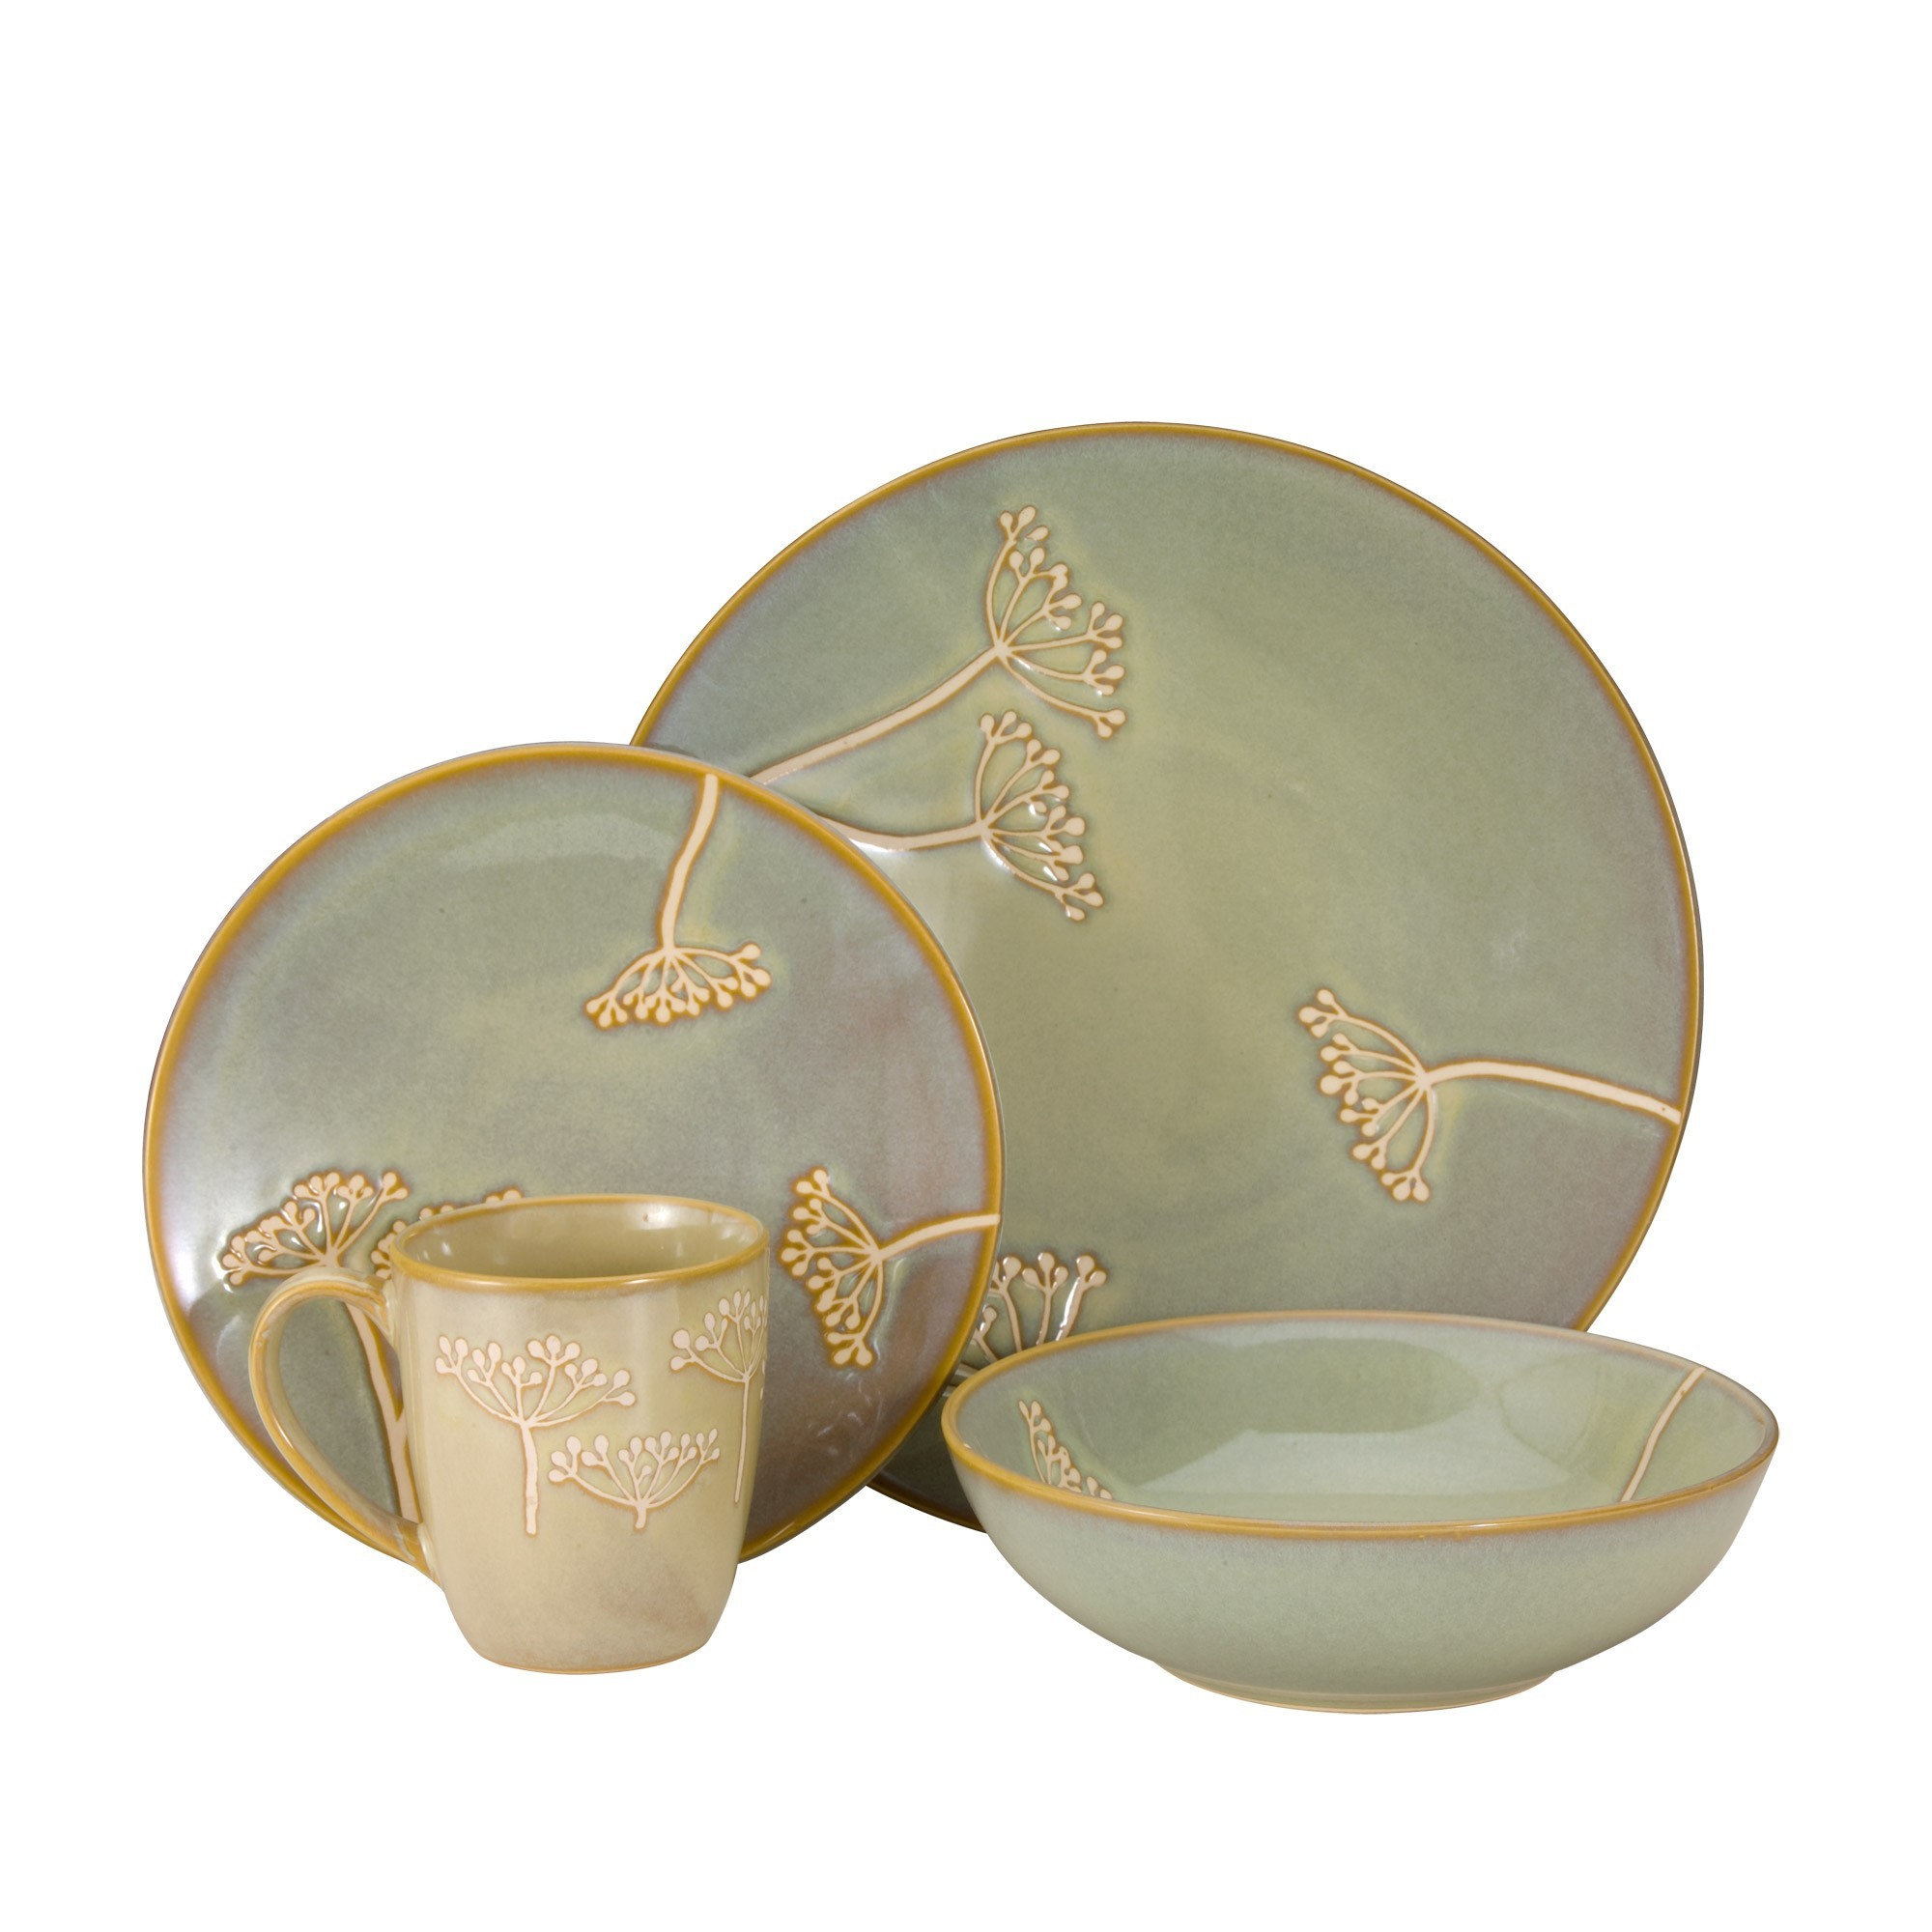 Bed Bath & Beyond Dishes | Contemporary Dinnerware Sets | Stoneware Dinnerware Sets